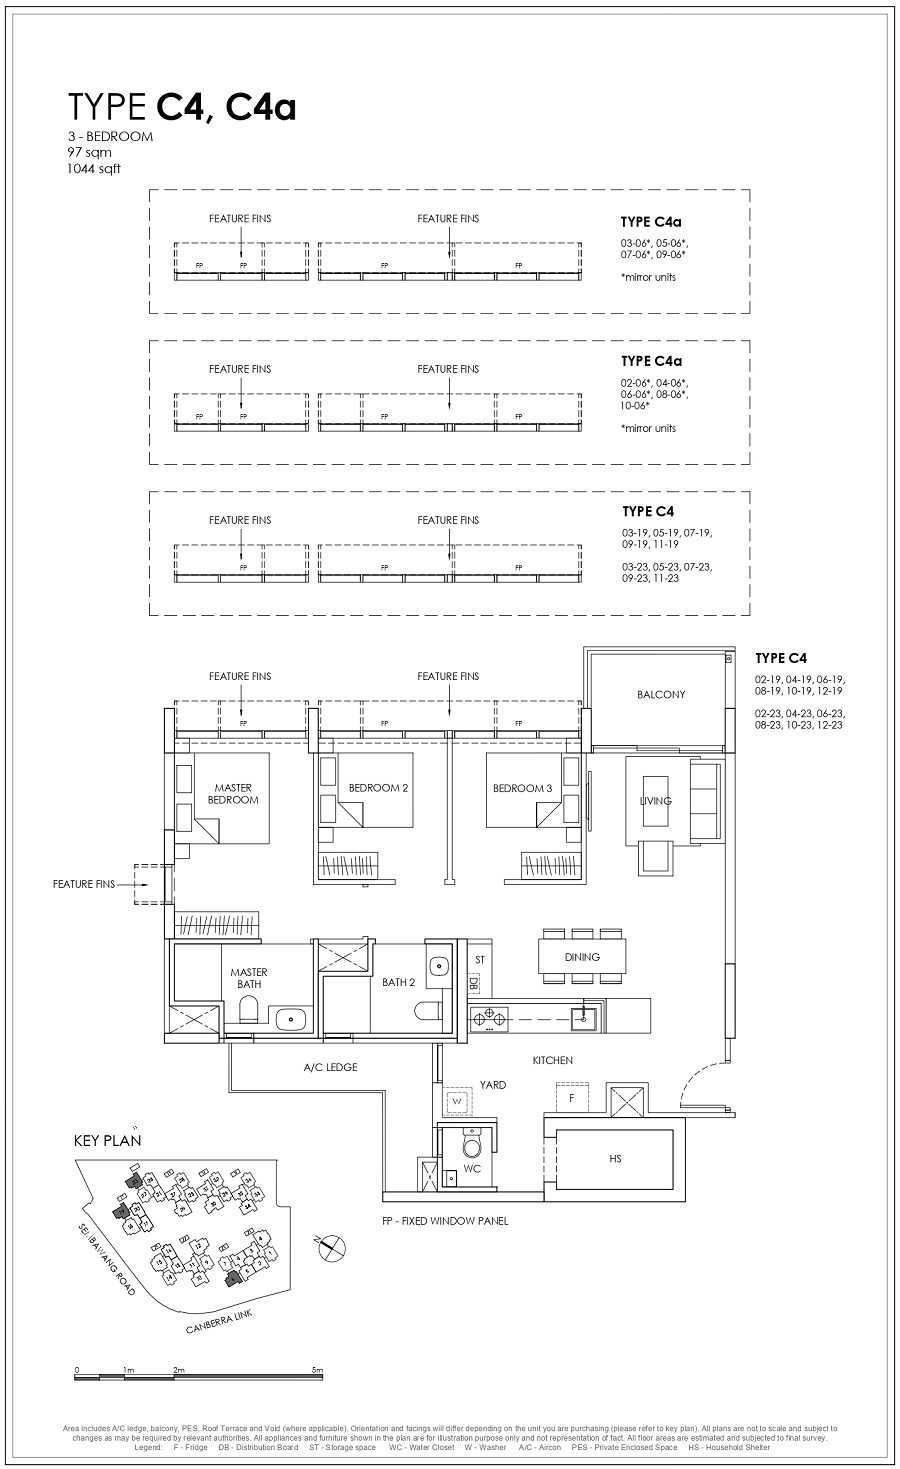 Provence Residence EC 3BR Type C4_C4a 97_1044